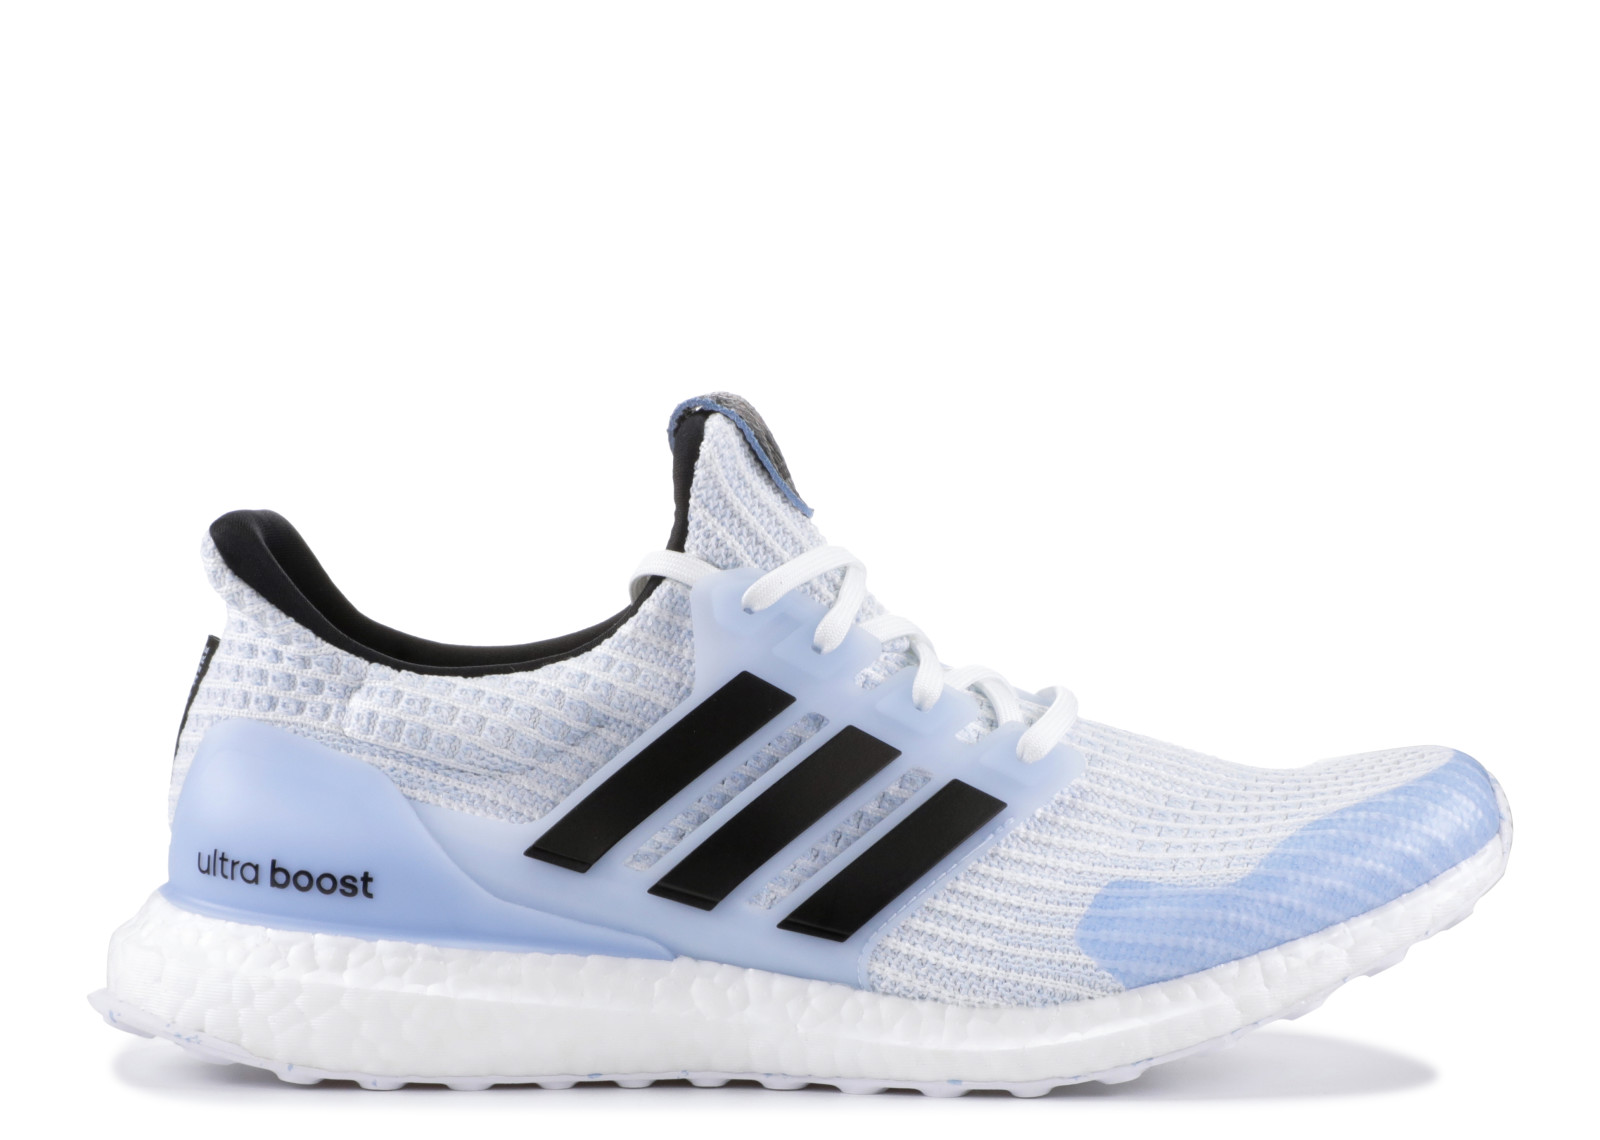 cc9d02d055b4d adidas Ultra Boost 4.0 Game of Thrones White Walkers